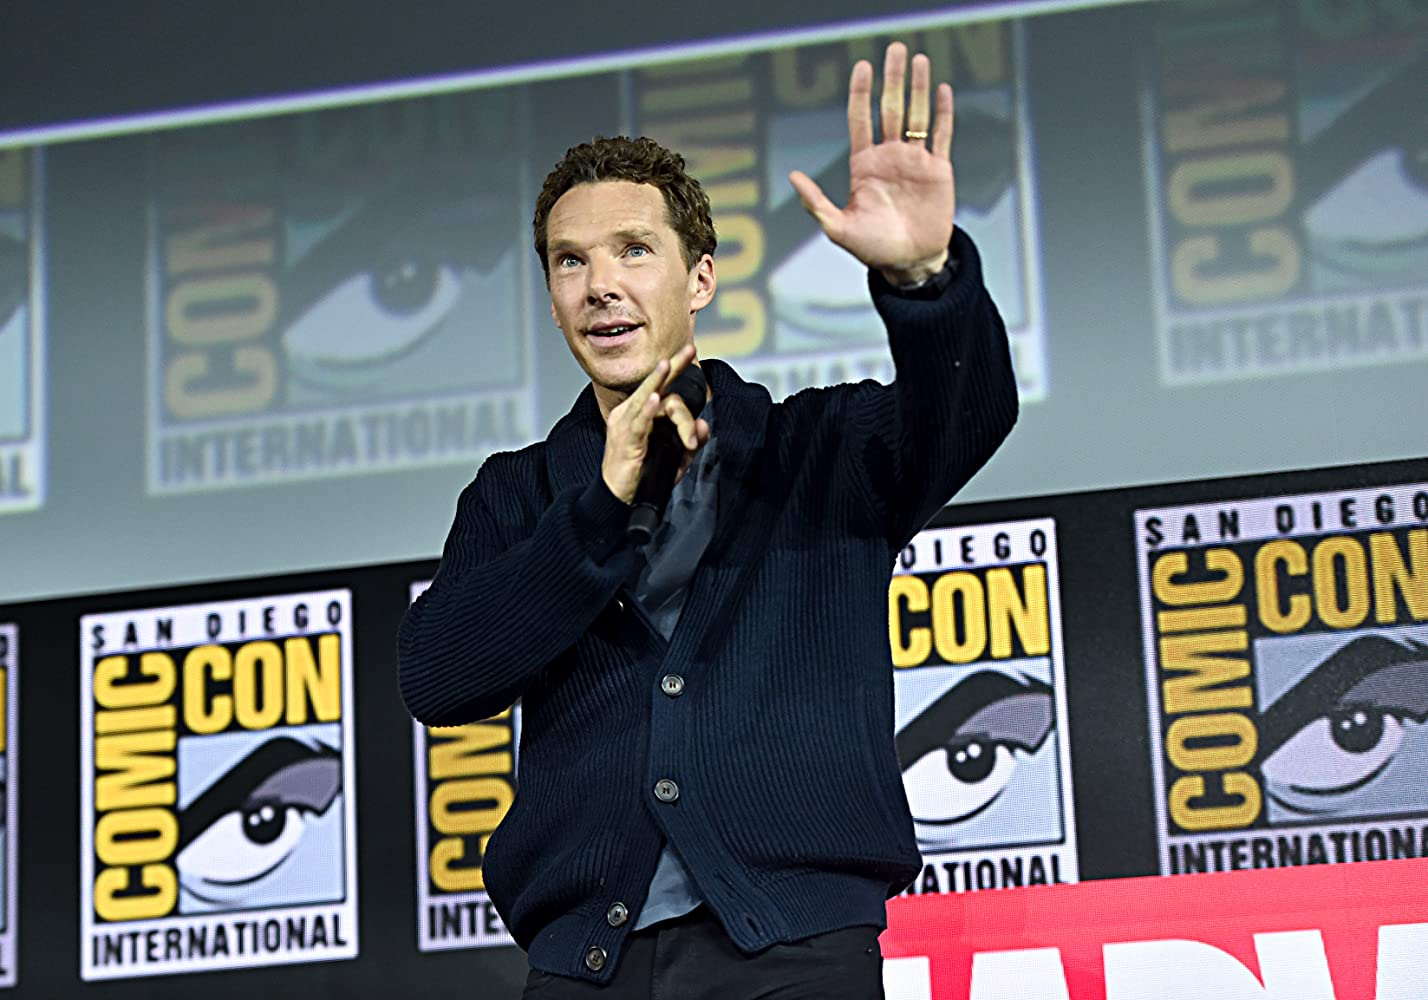 Benedict Cumberbatch at an event for Doctor Strange in the Multiverse of Madness (2021)